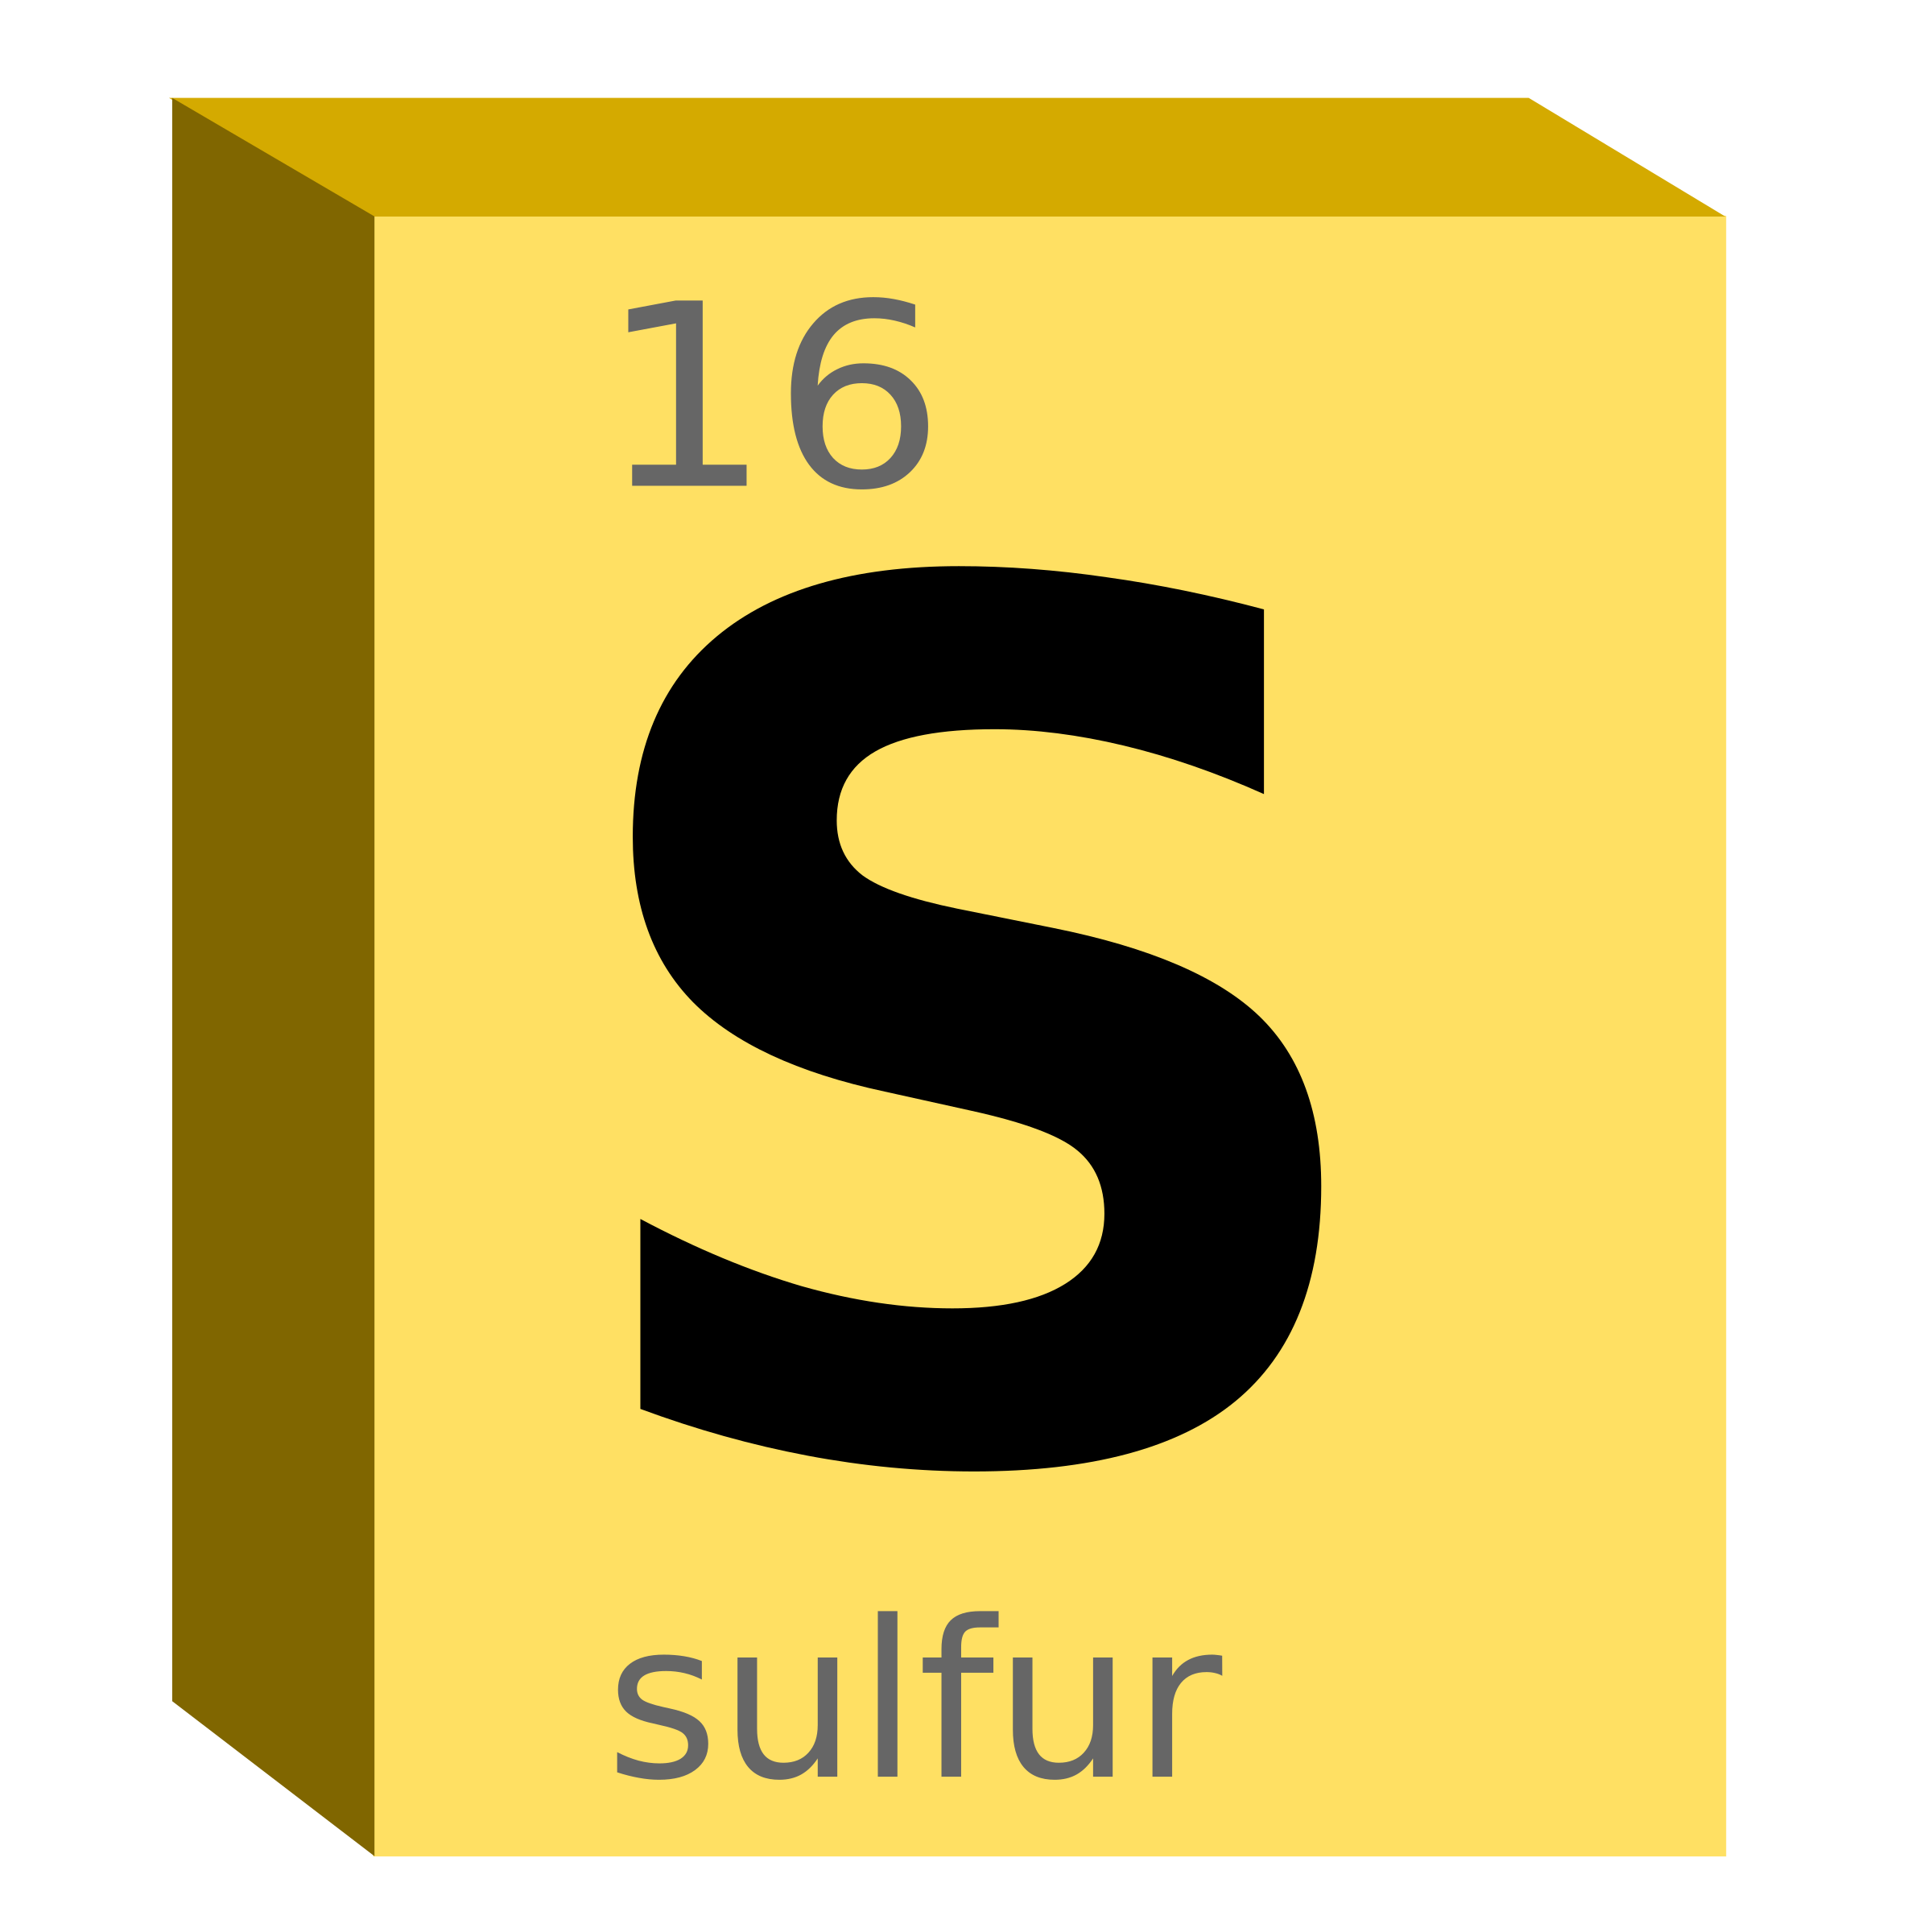 Clipart sulfur s block chemistry sulfur s block chemistry buycottarizona Image collections